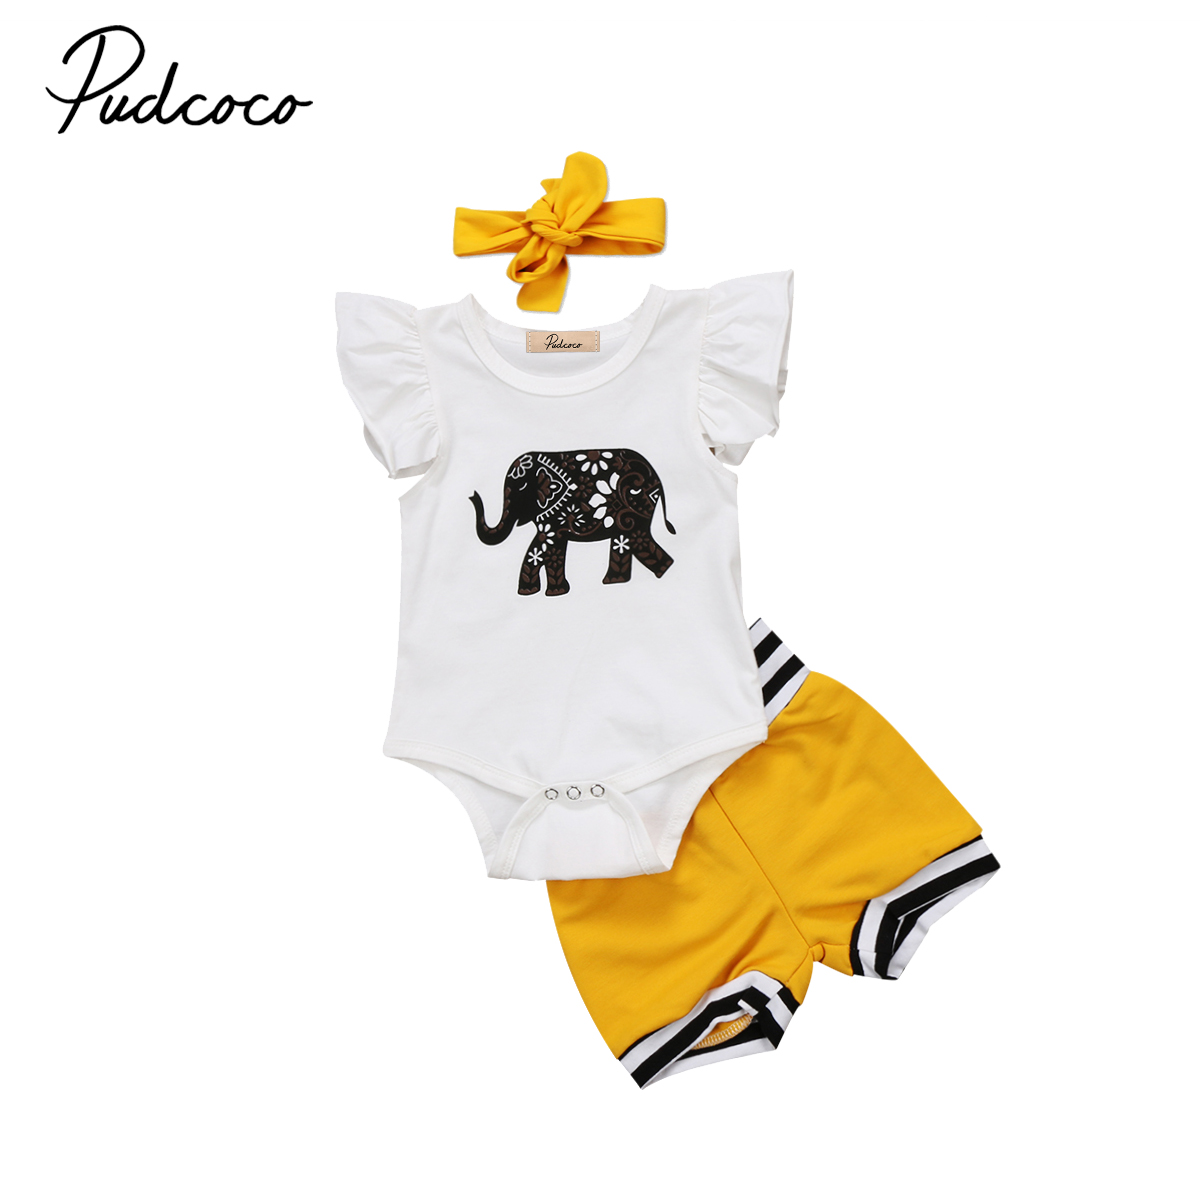 Pudcoco Summer Newborn Baby Girls Clothes Sleeveless Tops Ruffle Romper Bodysuit Shorts Bottoms Cotton Outfit Set 3pcs pudcoco newborn baby girl clothes 2017 summer sleeveless floral romper backless jumpsuit sunsuit children clothes